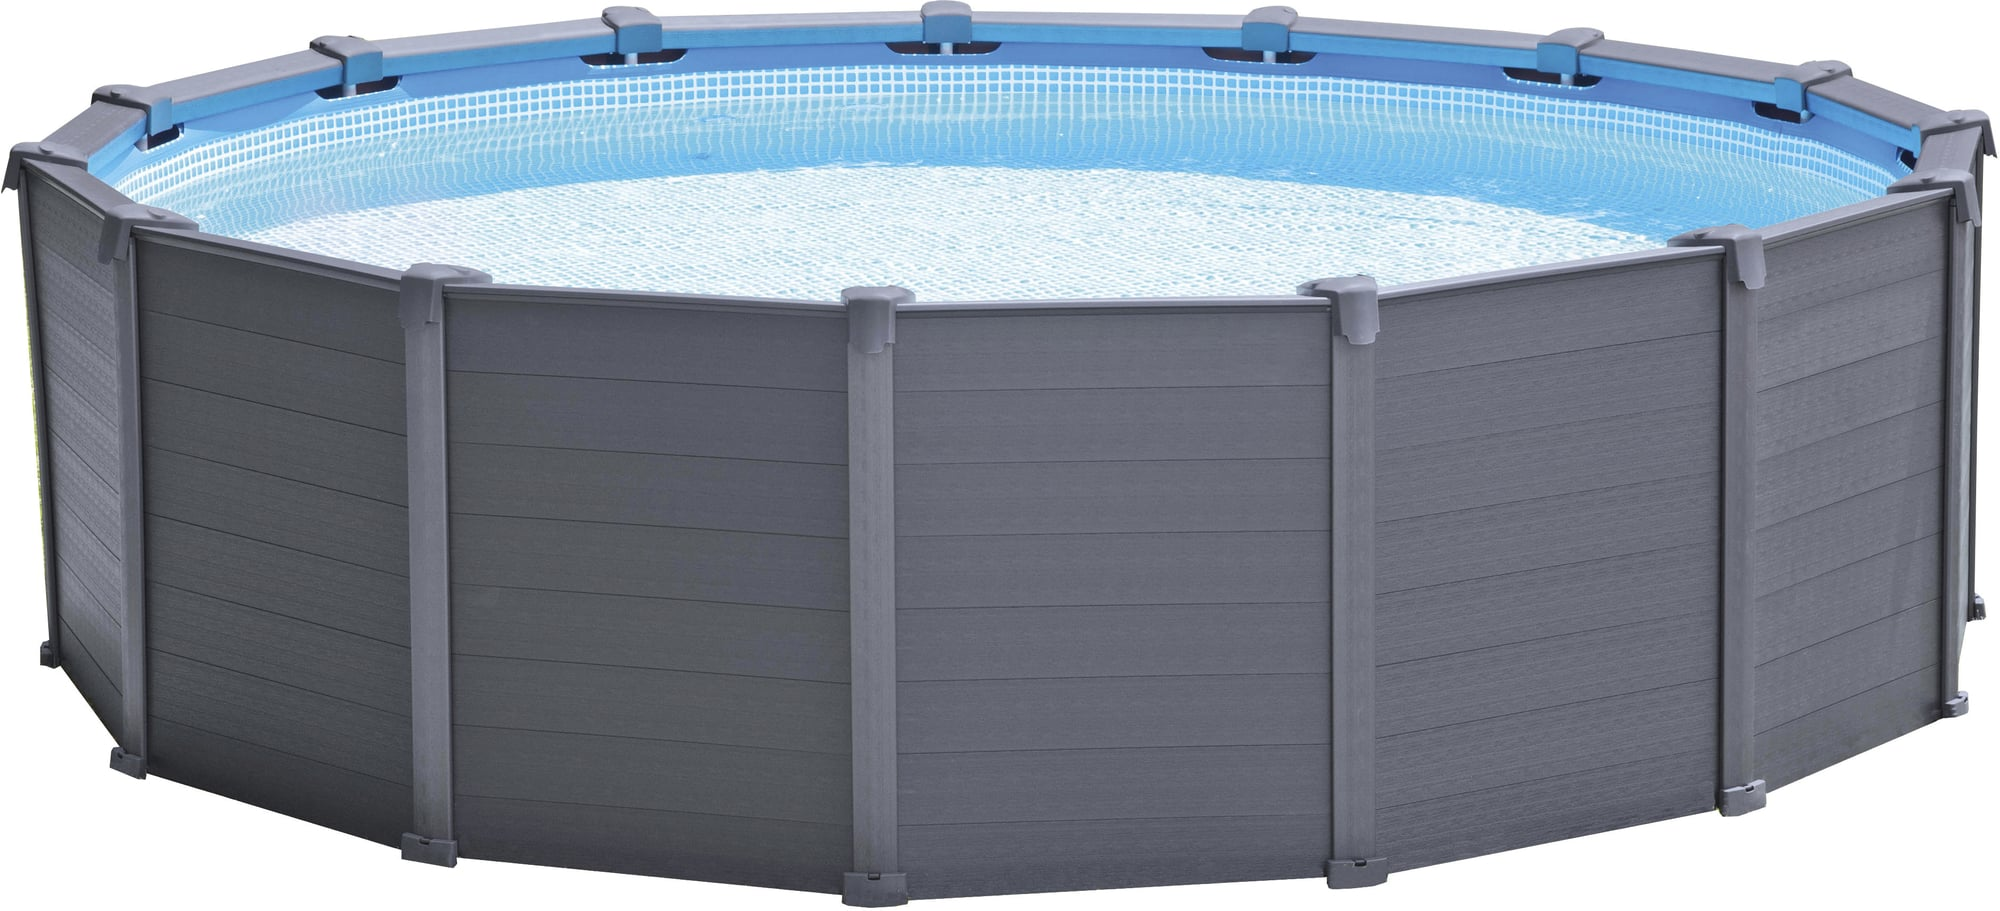 Intex Pool Reinigen Vor Winter Intex Frame Pool Graphit Ø 478 X 124 Cm